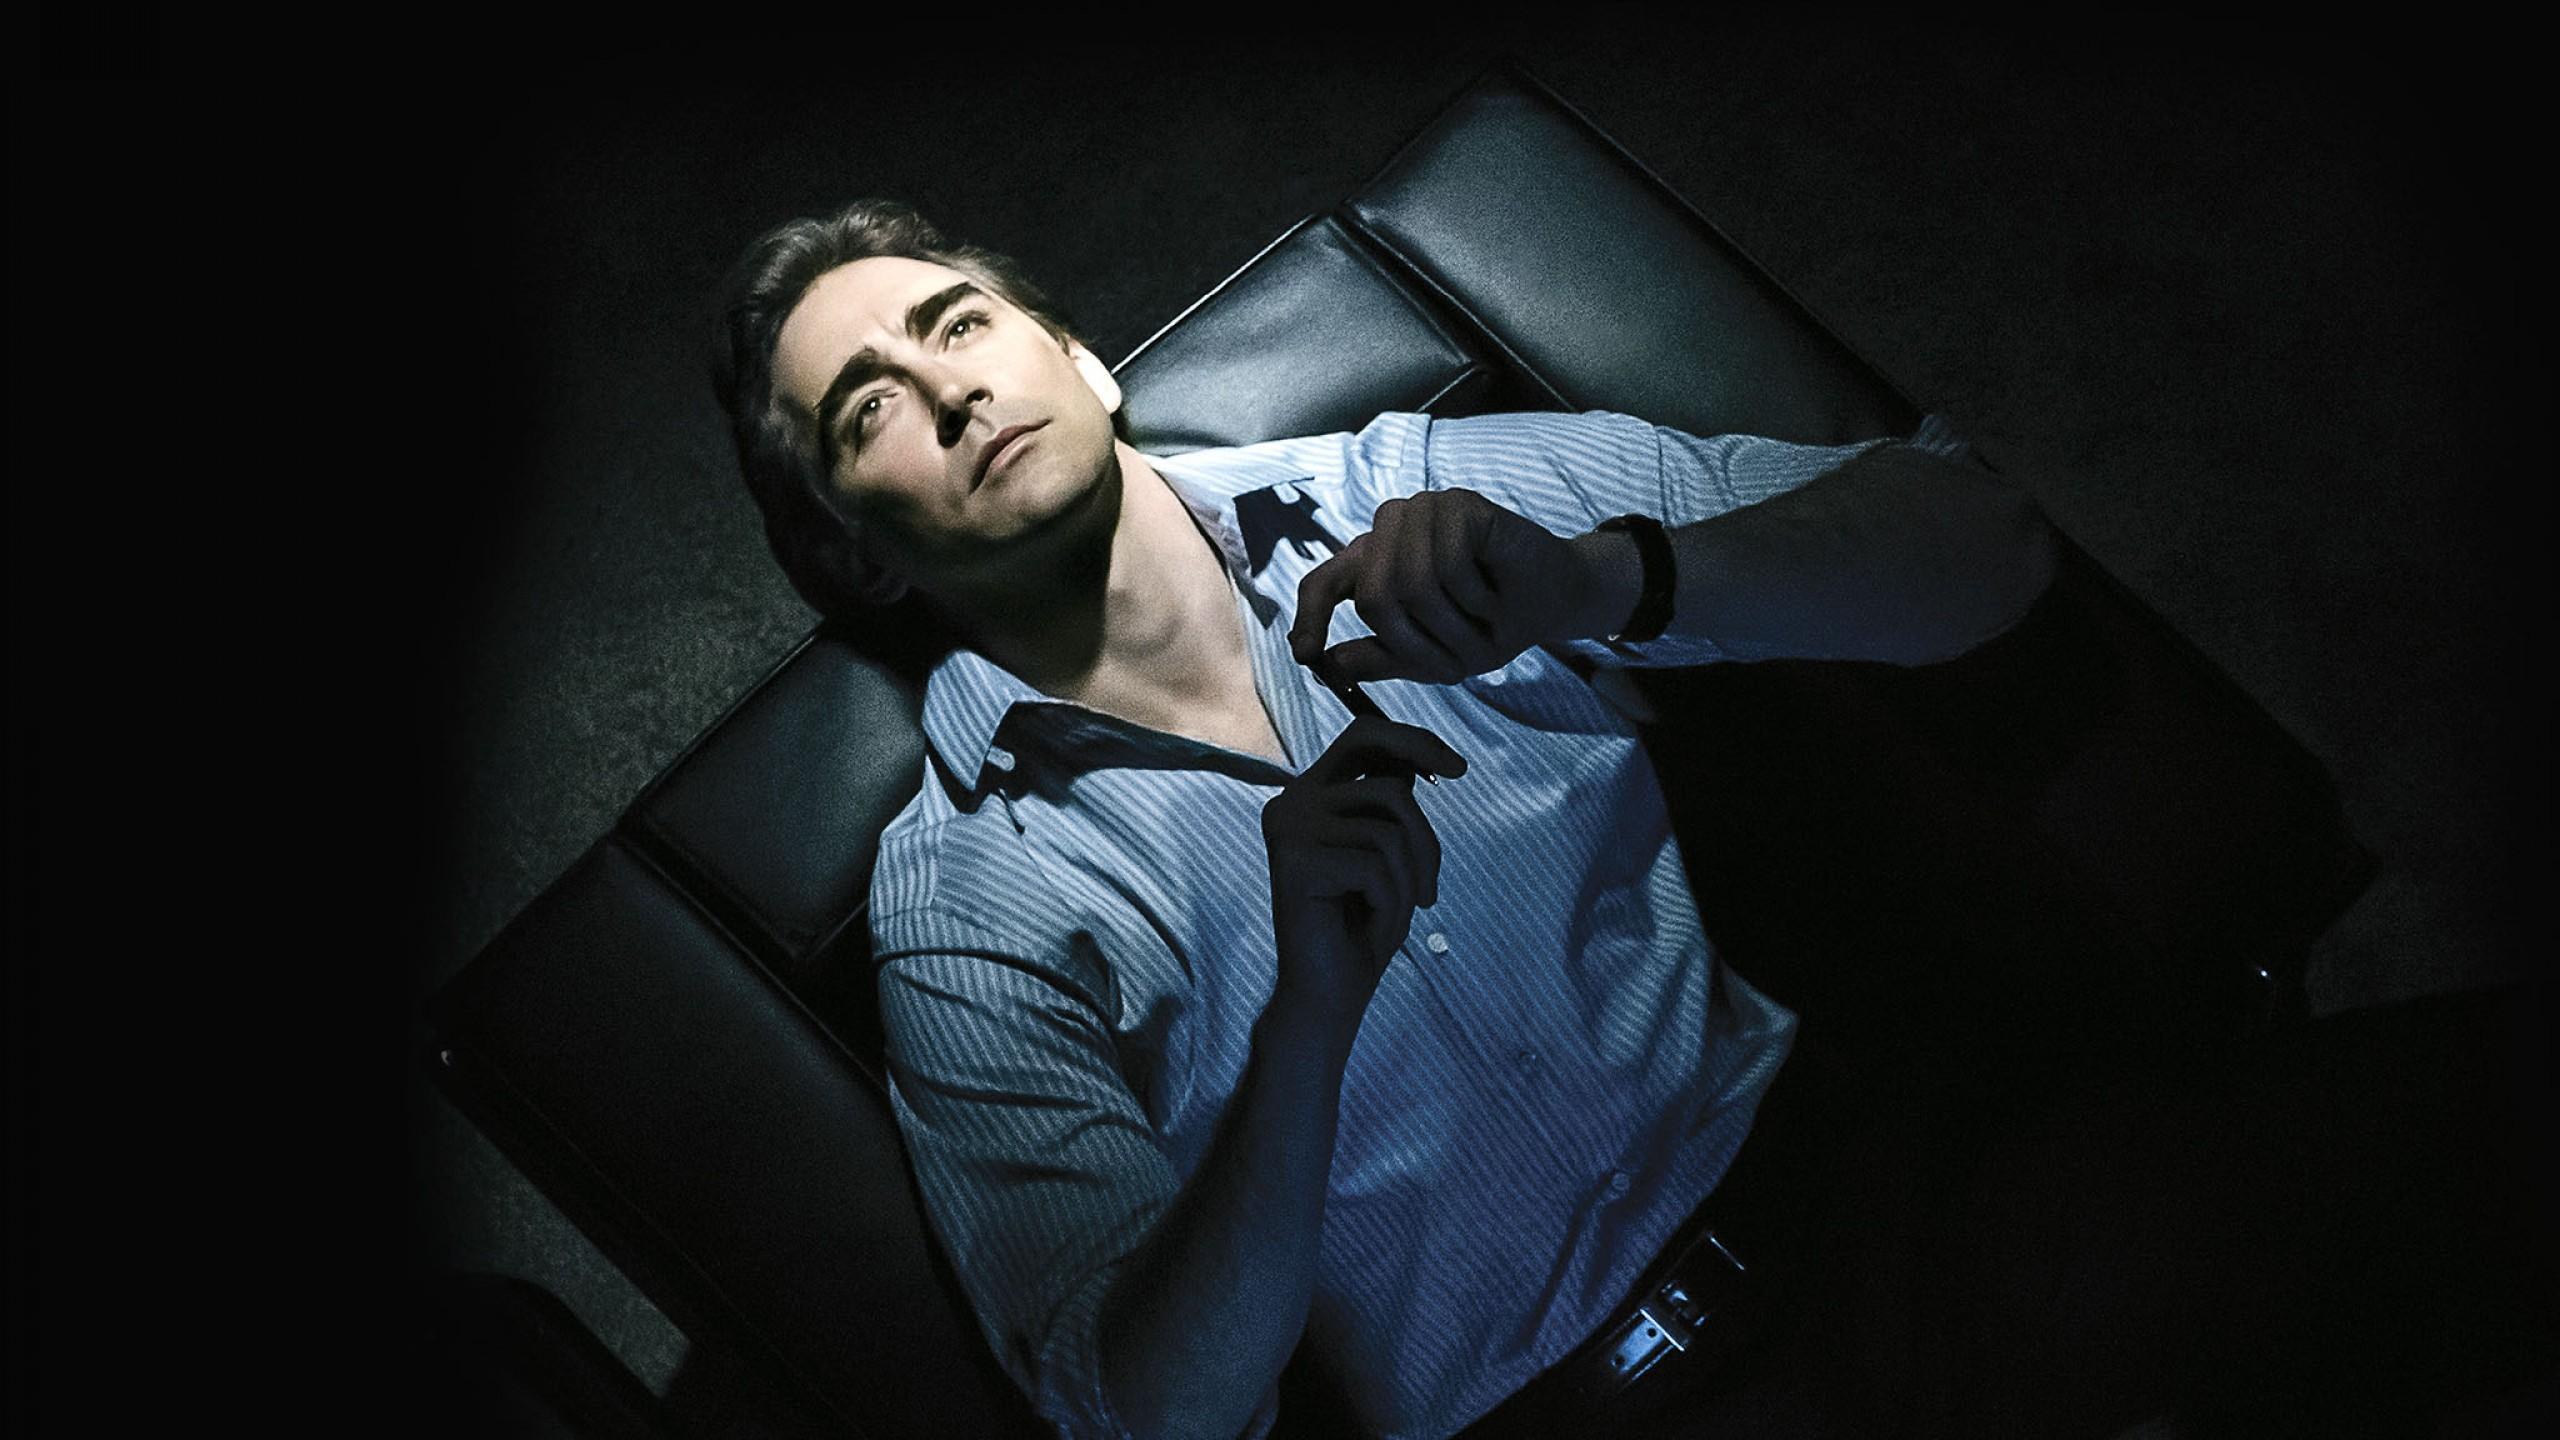 2560x1440 - Lee Pace Wallpapers 2